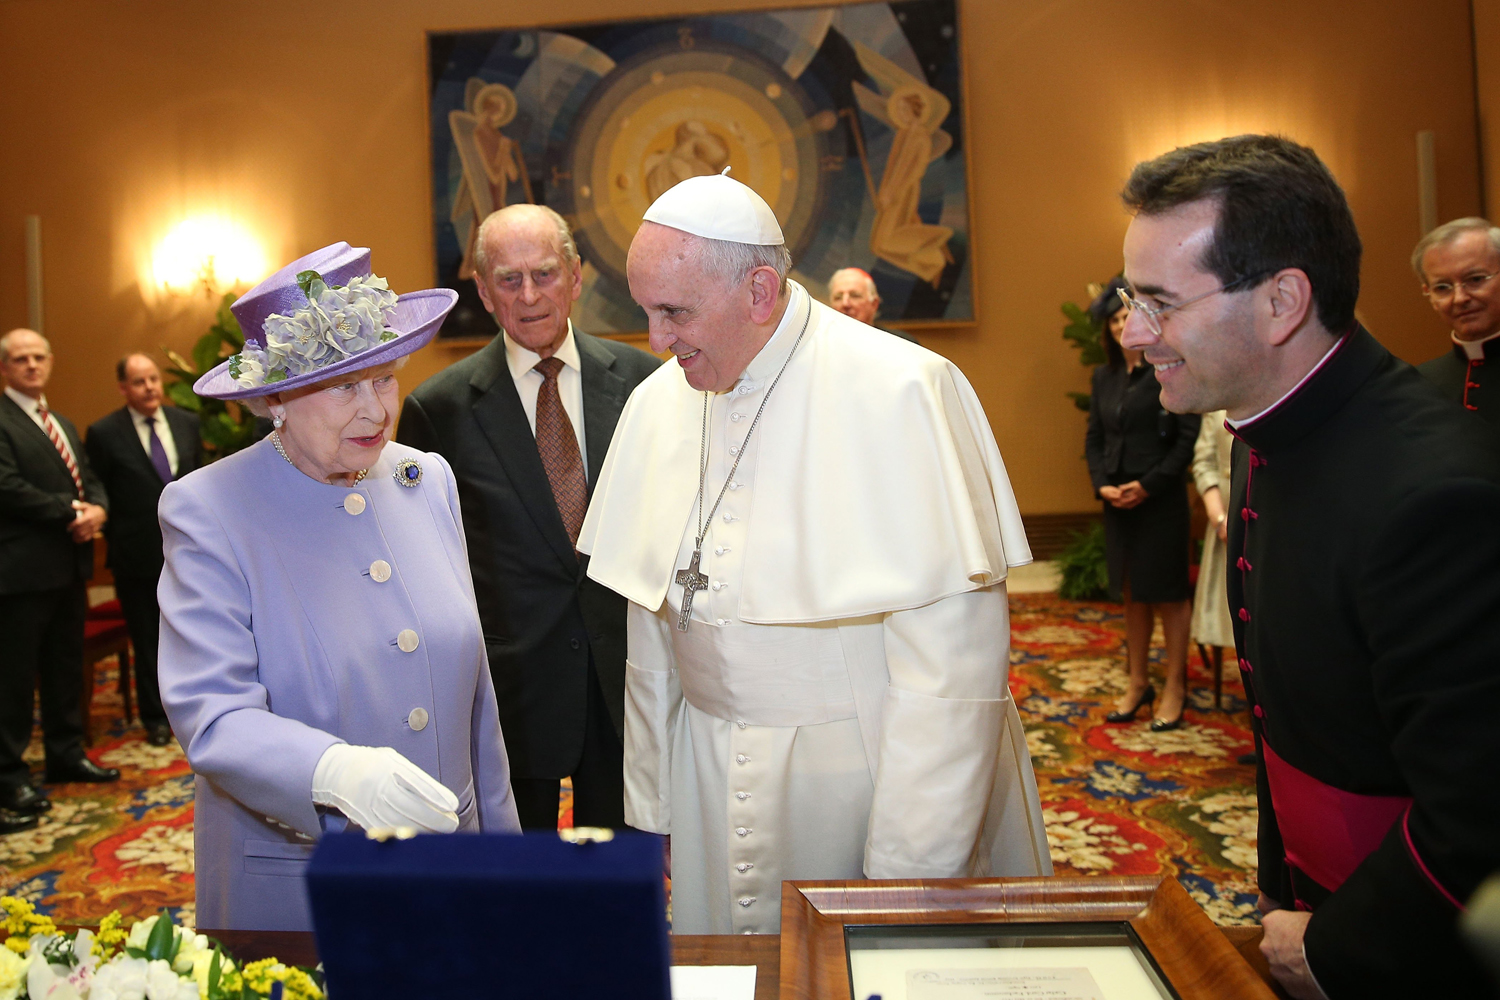 Queen Elizabeth II and Prince Philip, Duke of Edinburgh, have an audience with Pope Francis, during their one-day visit to Rome on April 3, 2014 in Vatican City, Vatican.